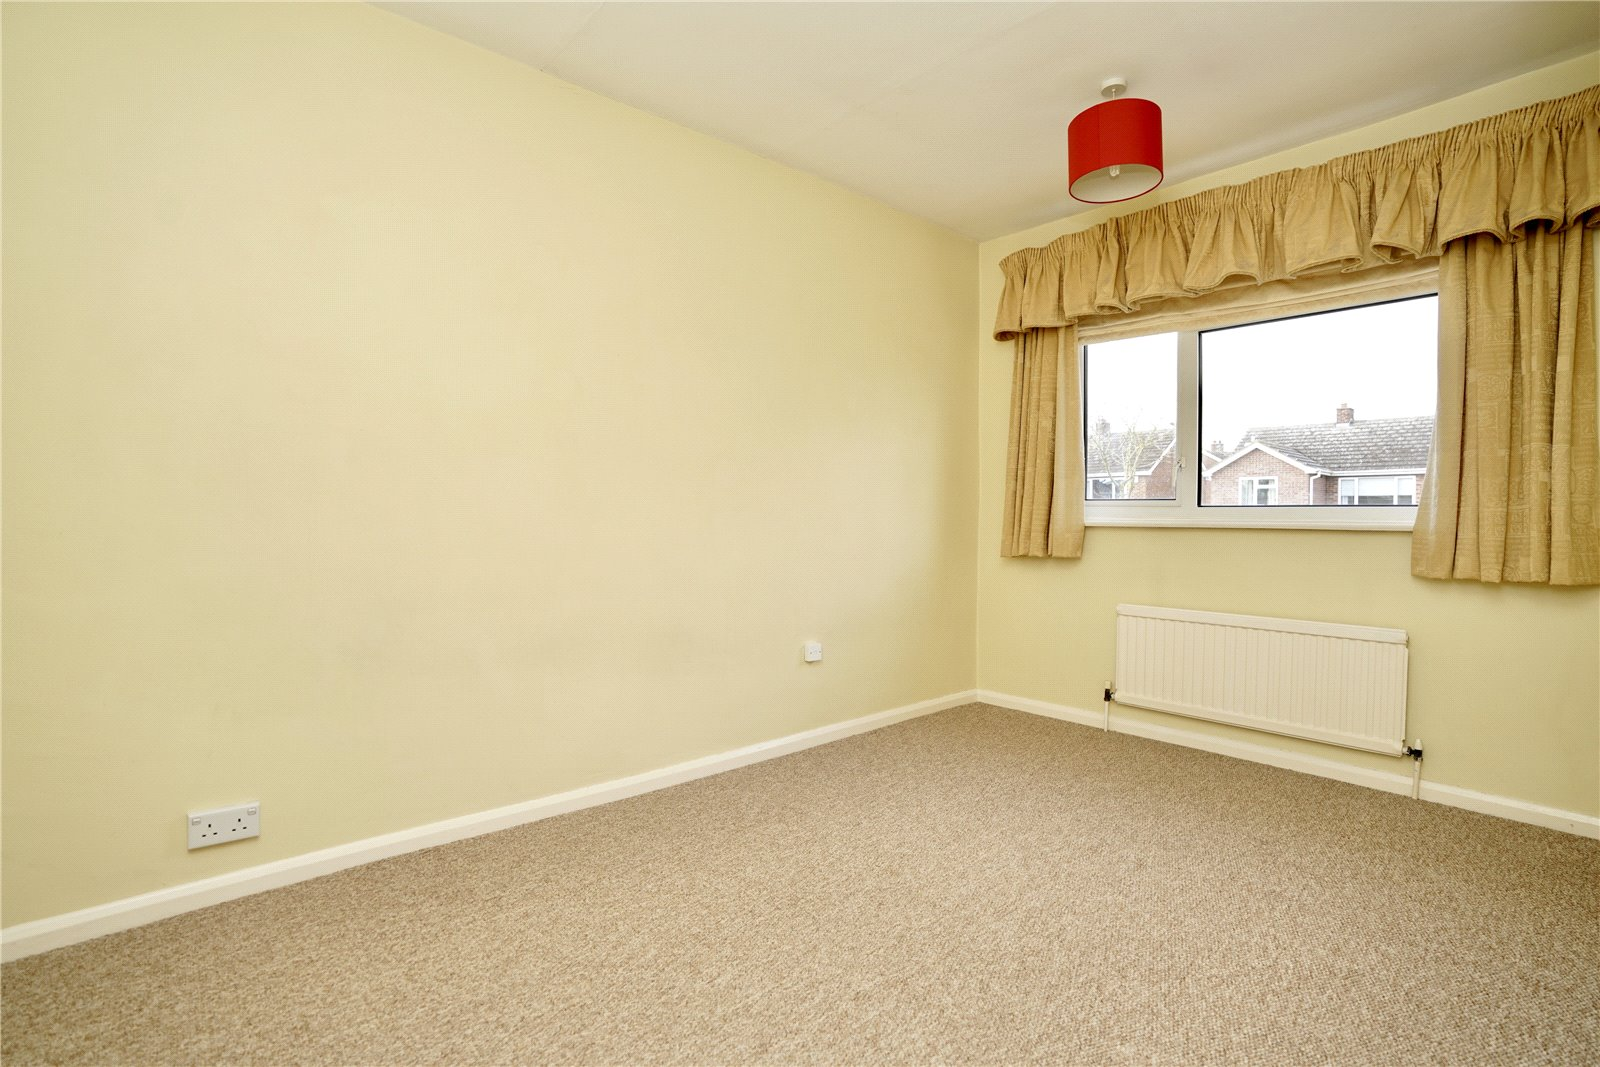 4 bed house for sale in Manor Close, Great Staughton  - Property Image 11